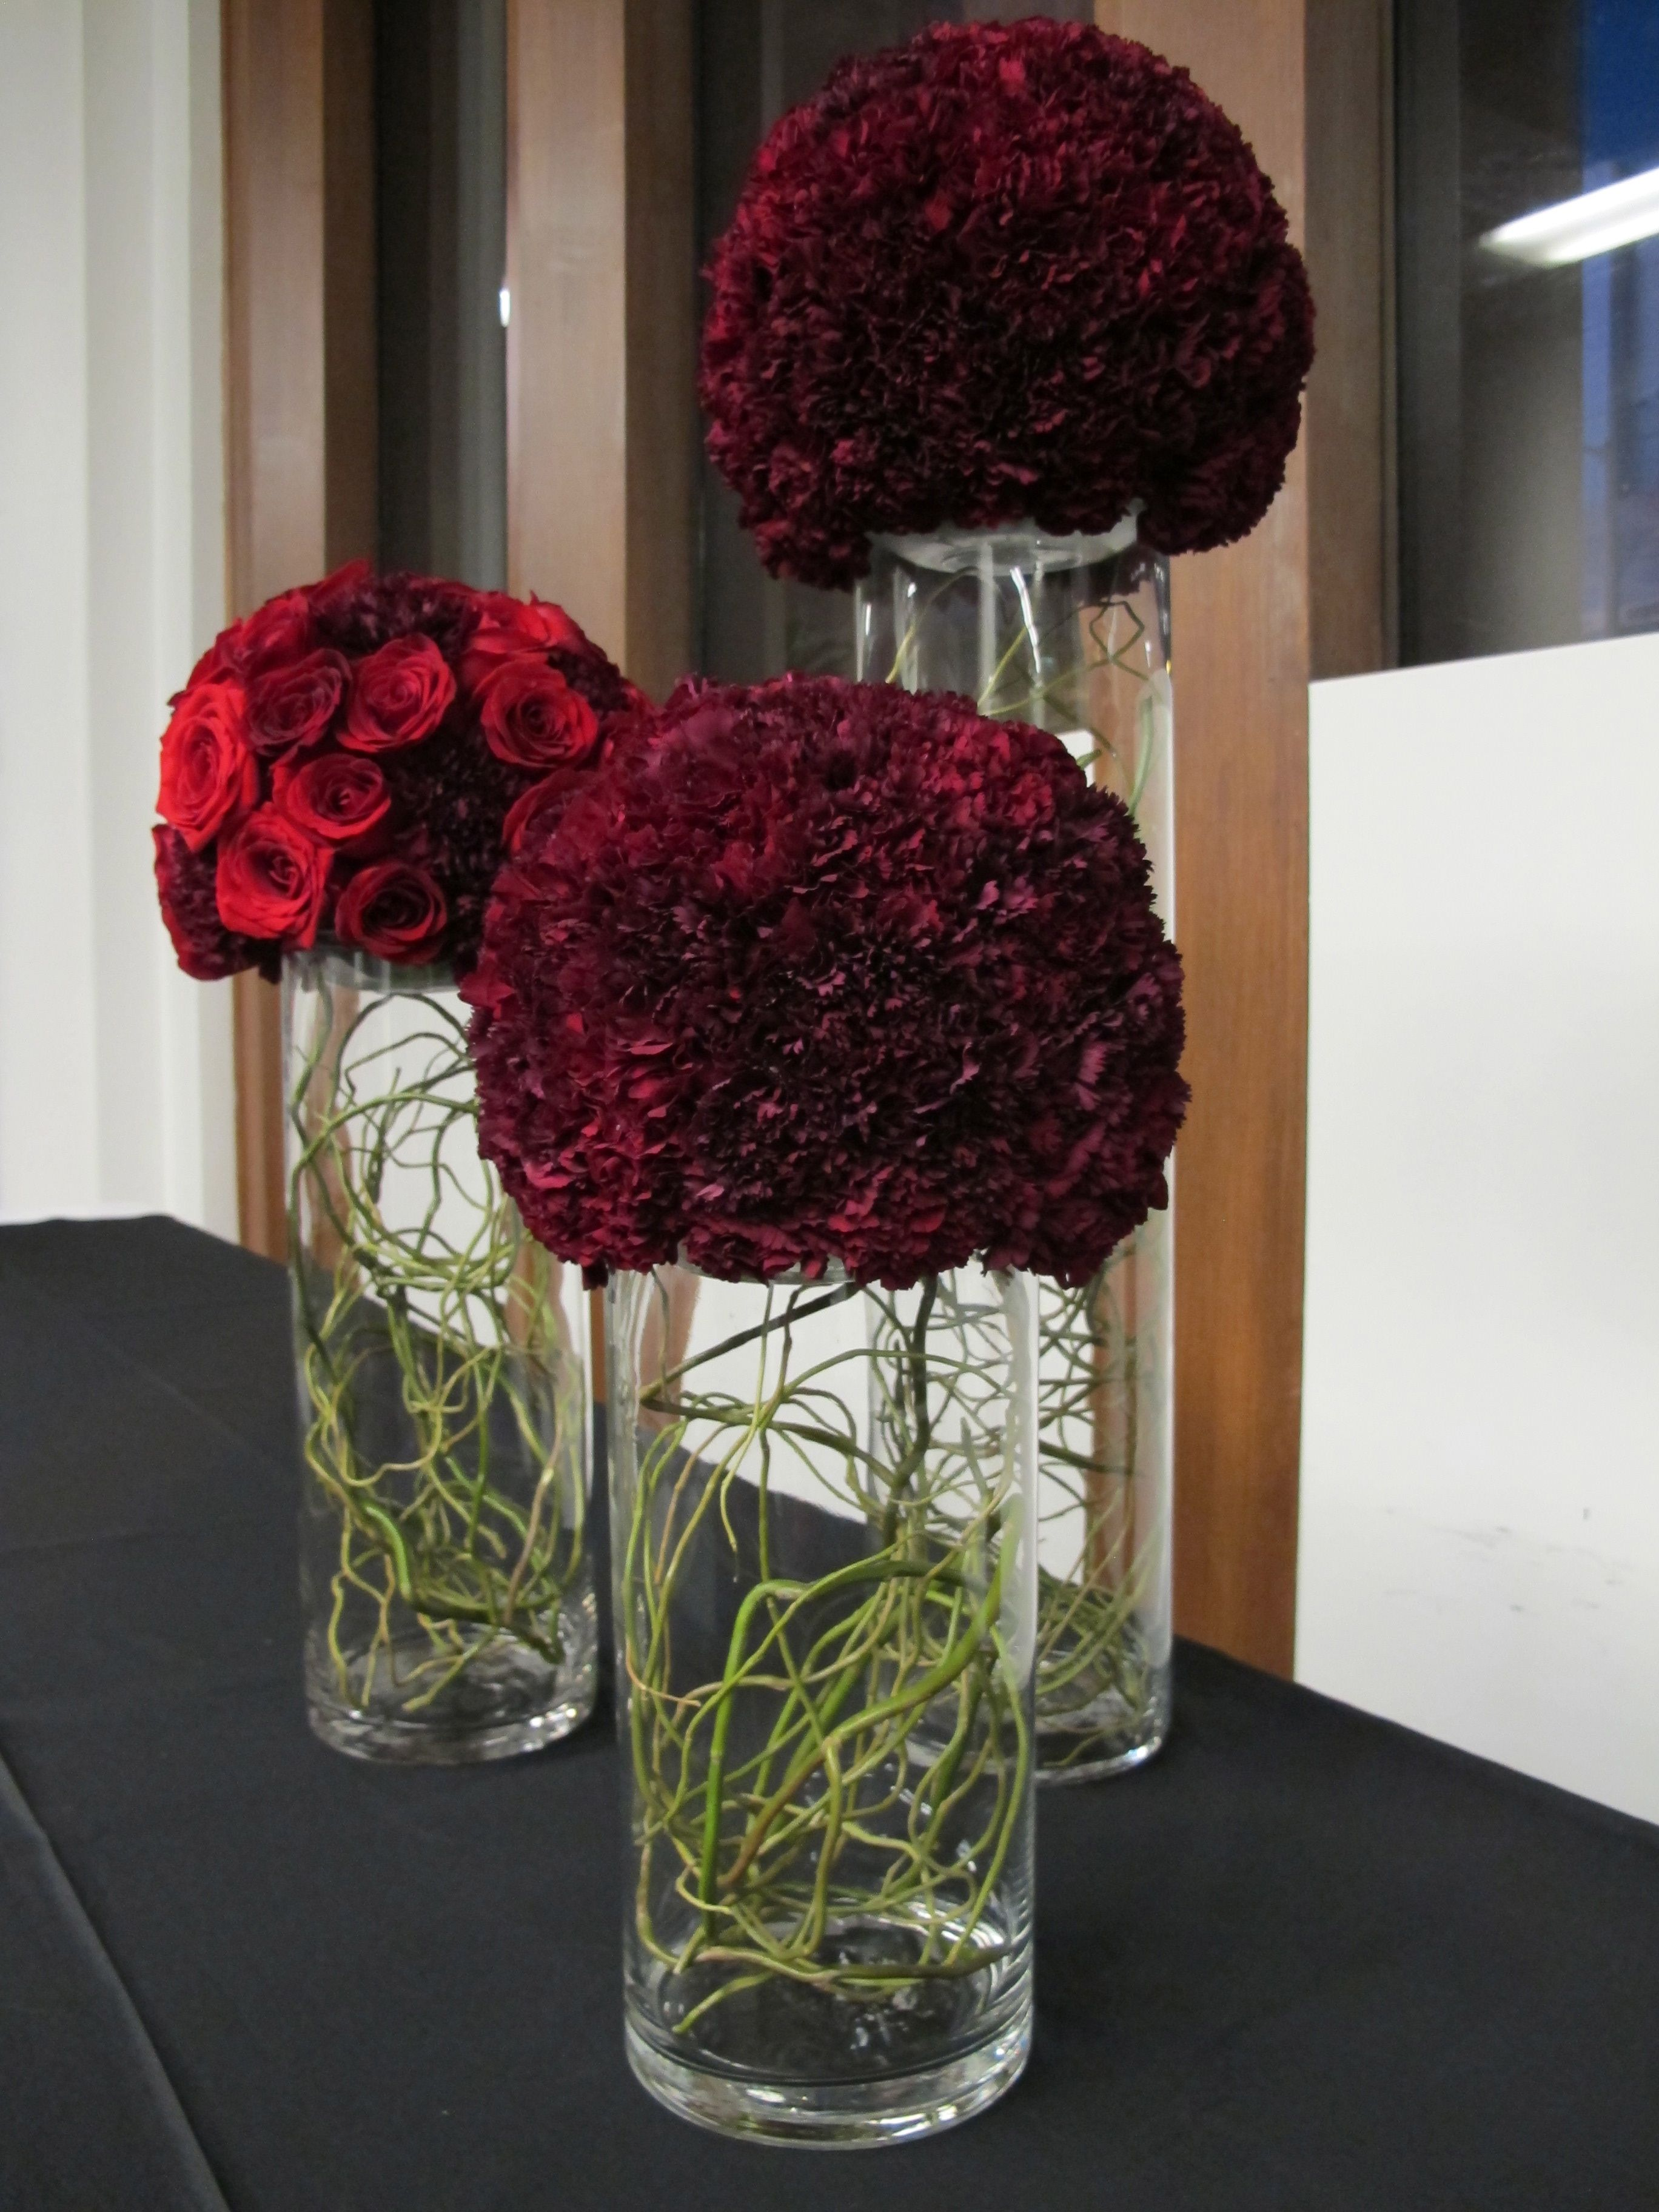 Carnation and rose balls for a corporate holiday event